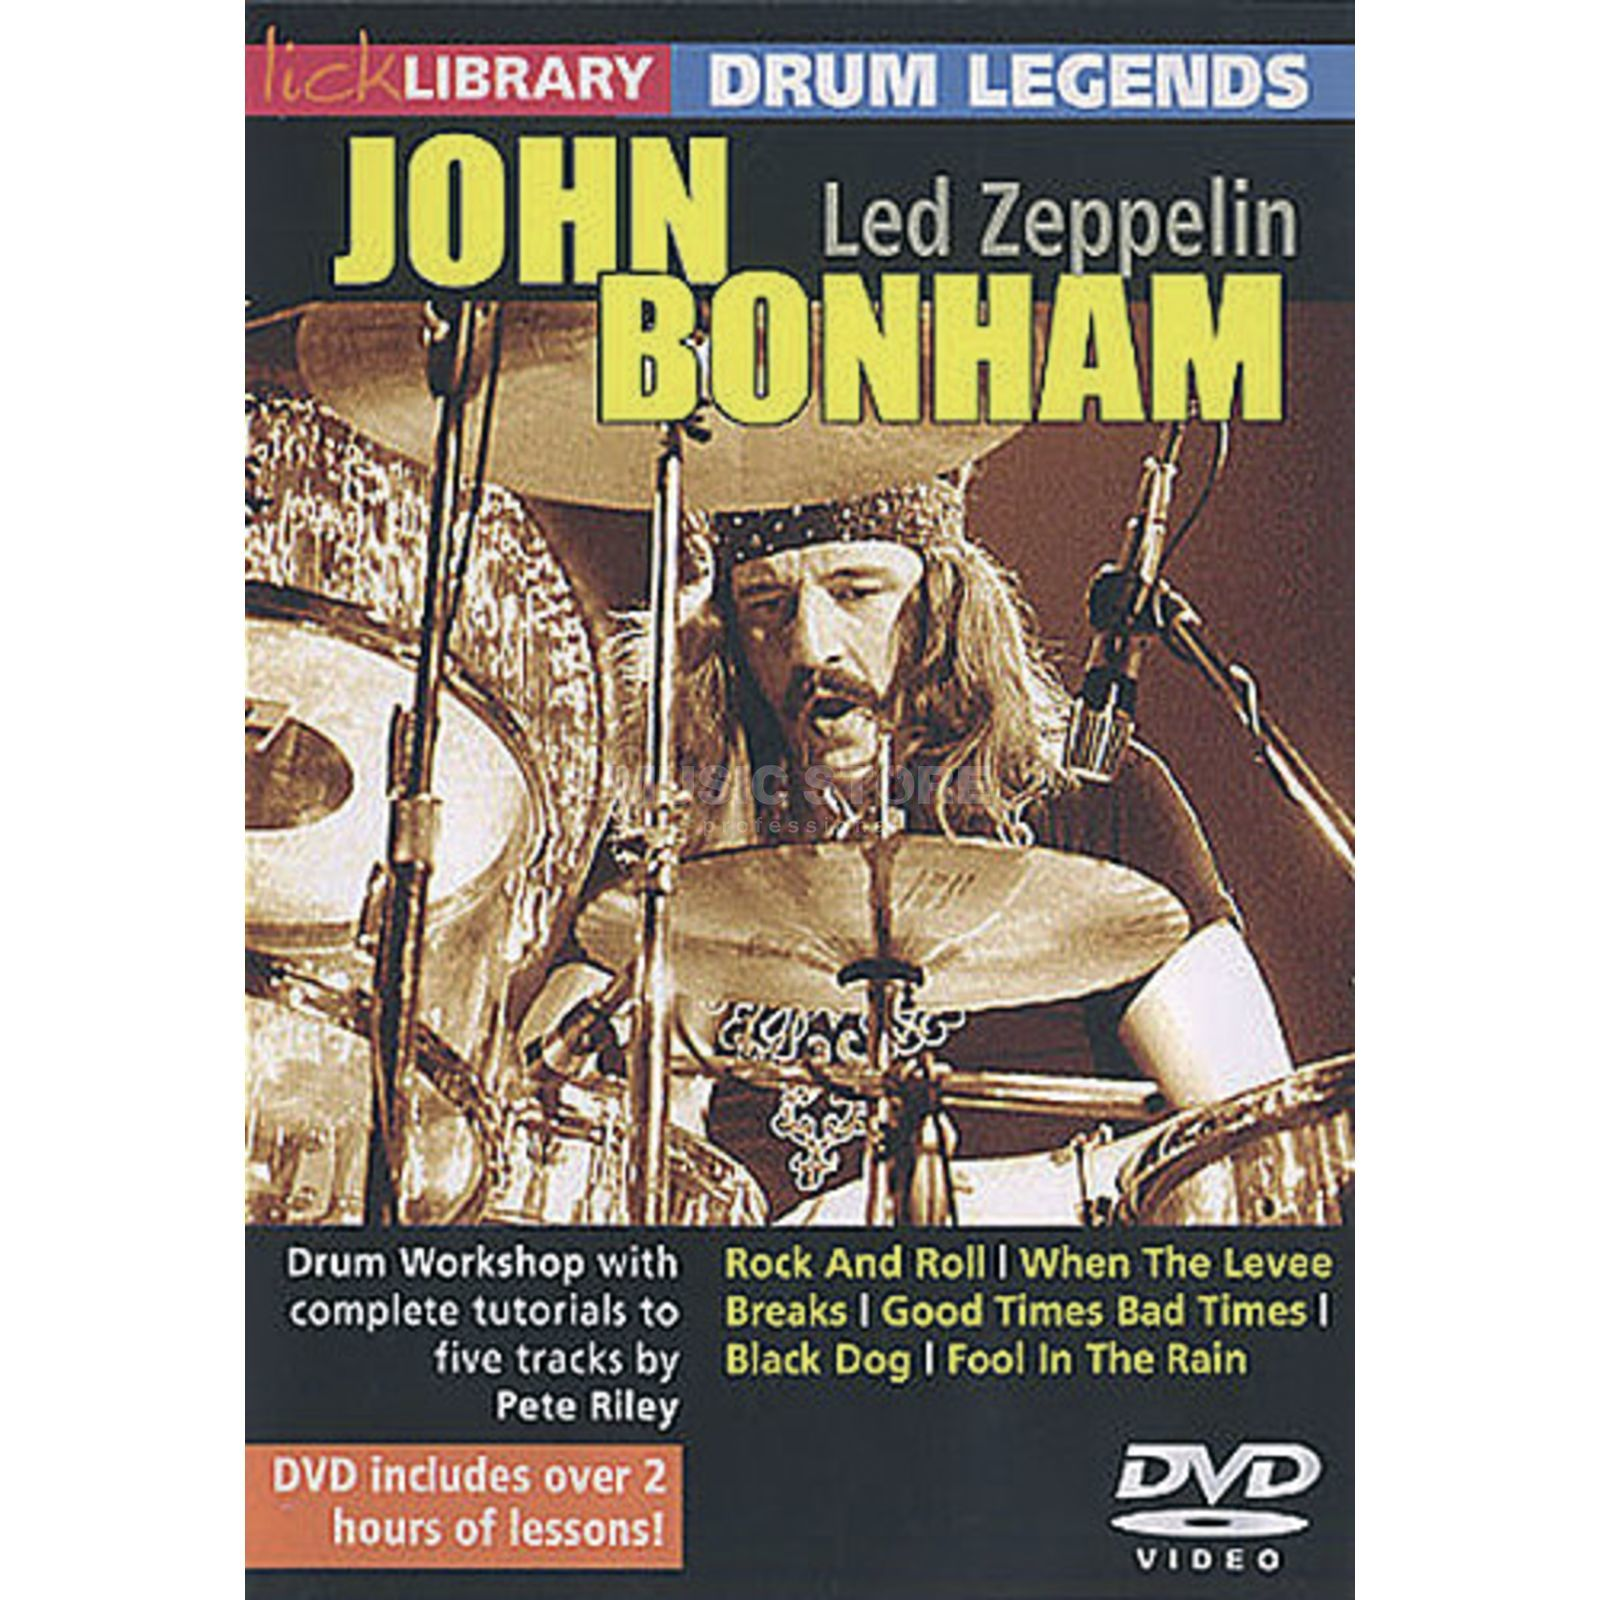 Roadrock International Lick Library: Drum Legends - John Bonham DVD Produktbild